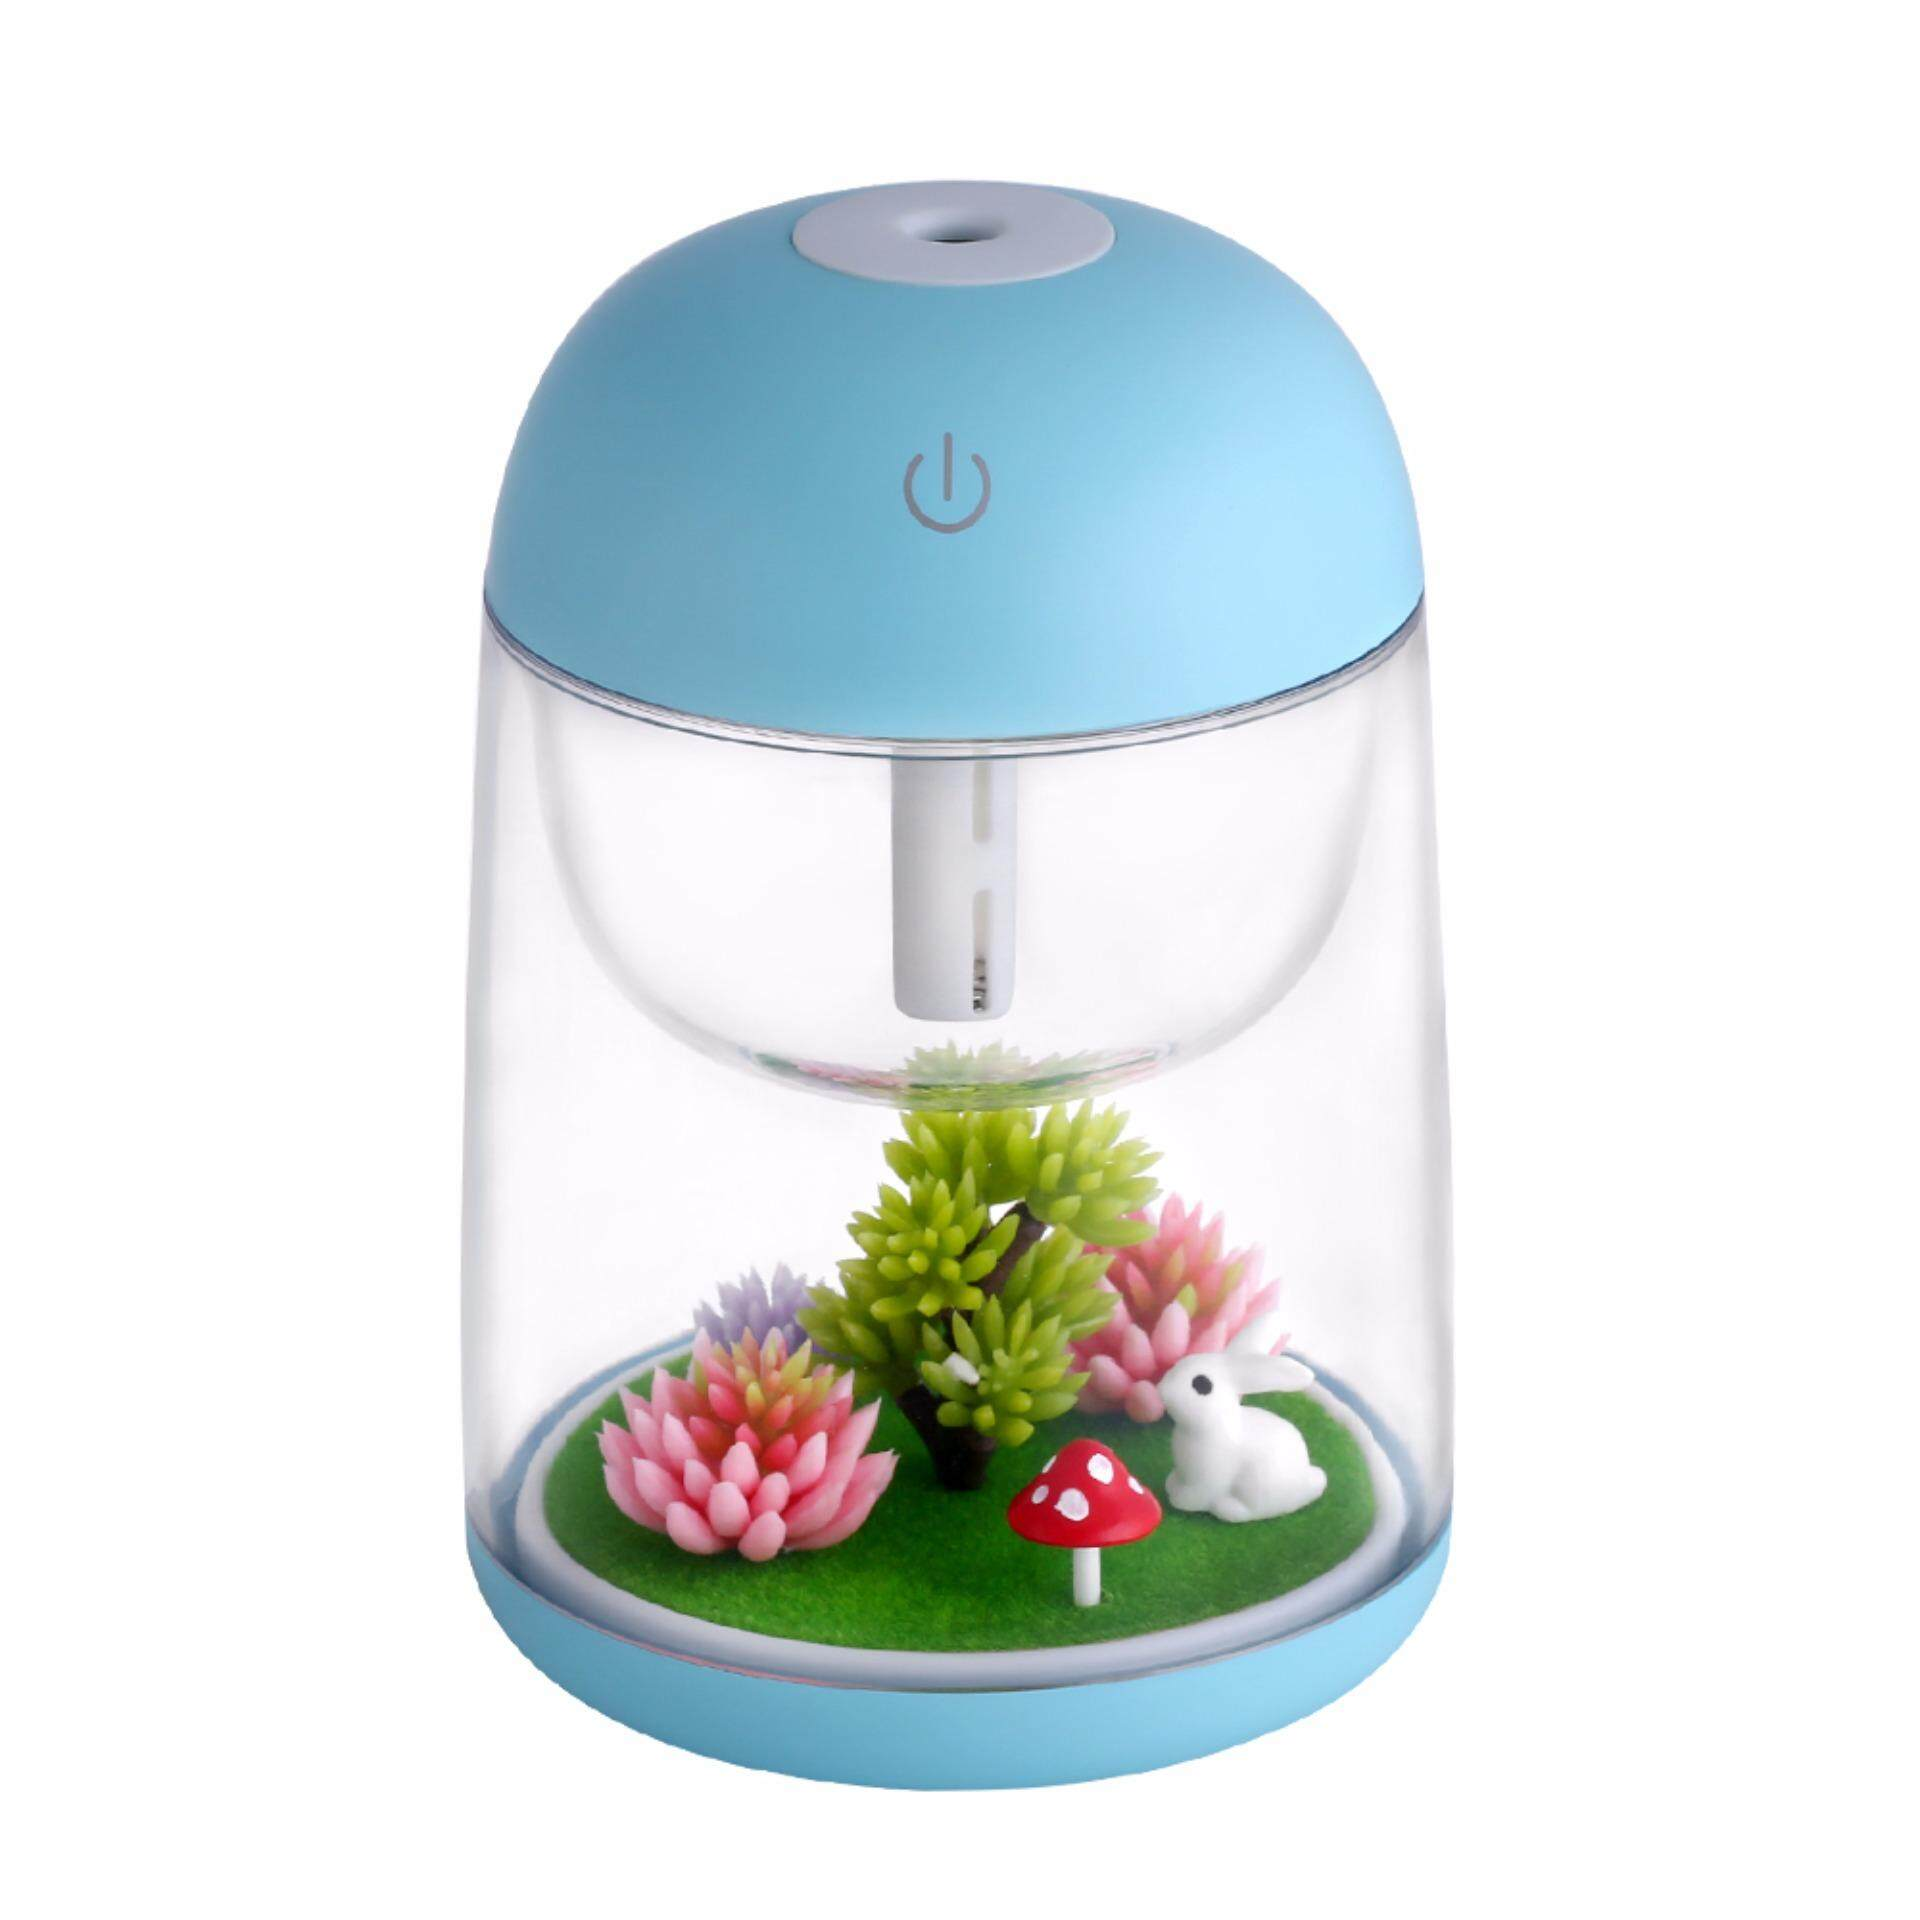 Micro Landscape Usb Humidifier Car Air Purifier Essential Oil Diffuser 180Ml Aroma Essential Oil With Led Light Multi Use For Travel Office Desk Desktop Car Small Baby Bedroom With Water Bottle Blue Intl Compare Prices